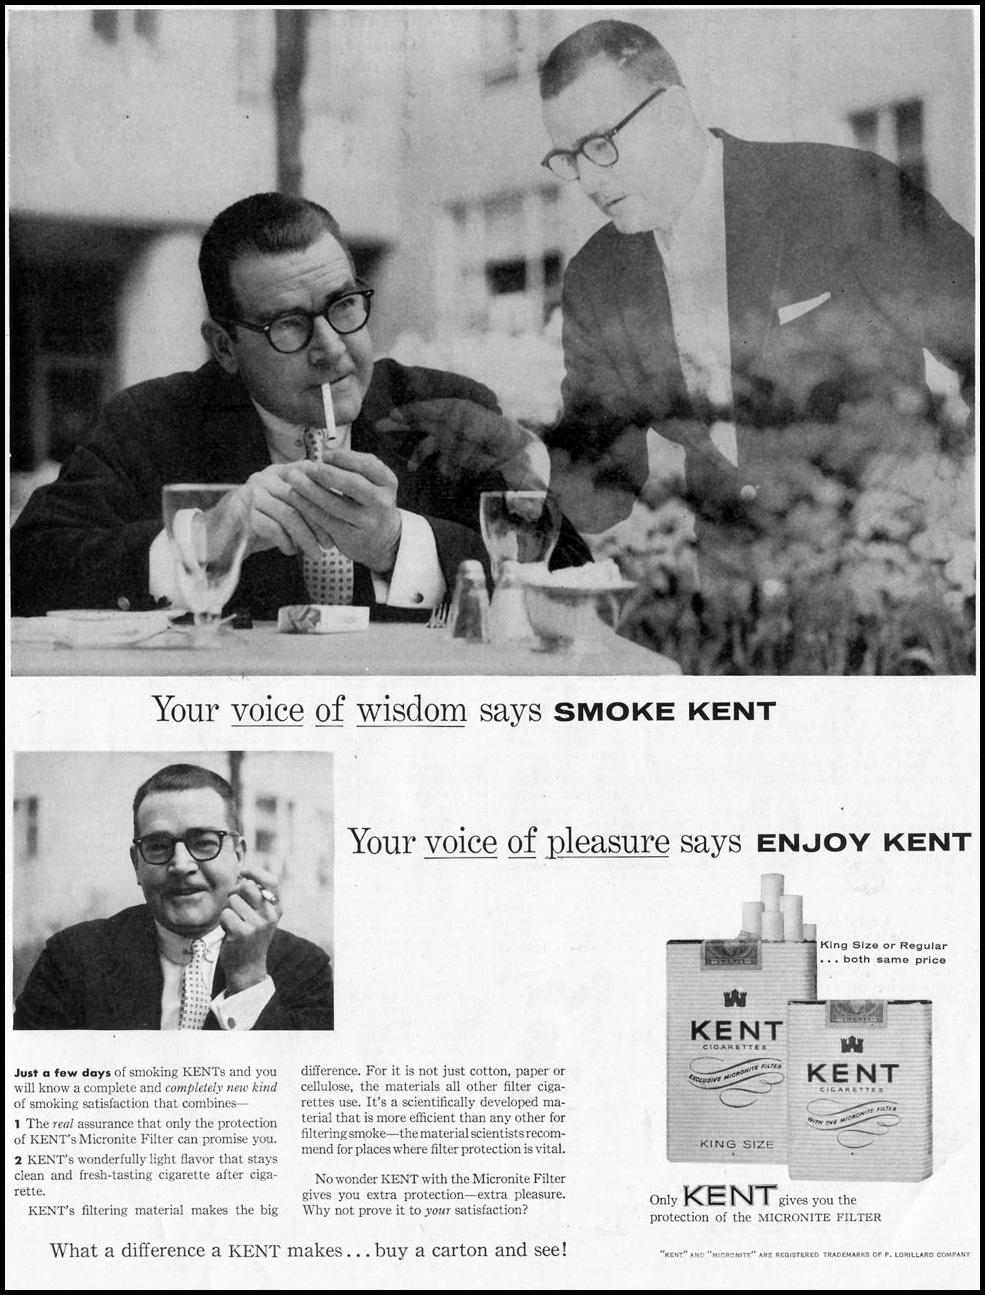 KENT CIGARETTES SATURDAY EVENING POST 06/04/1955 p. 55